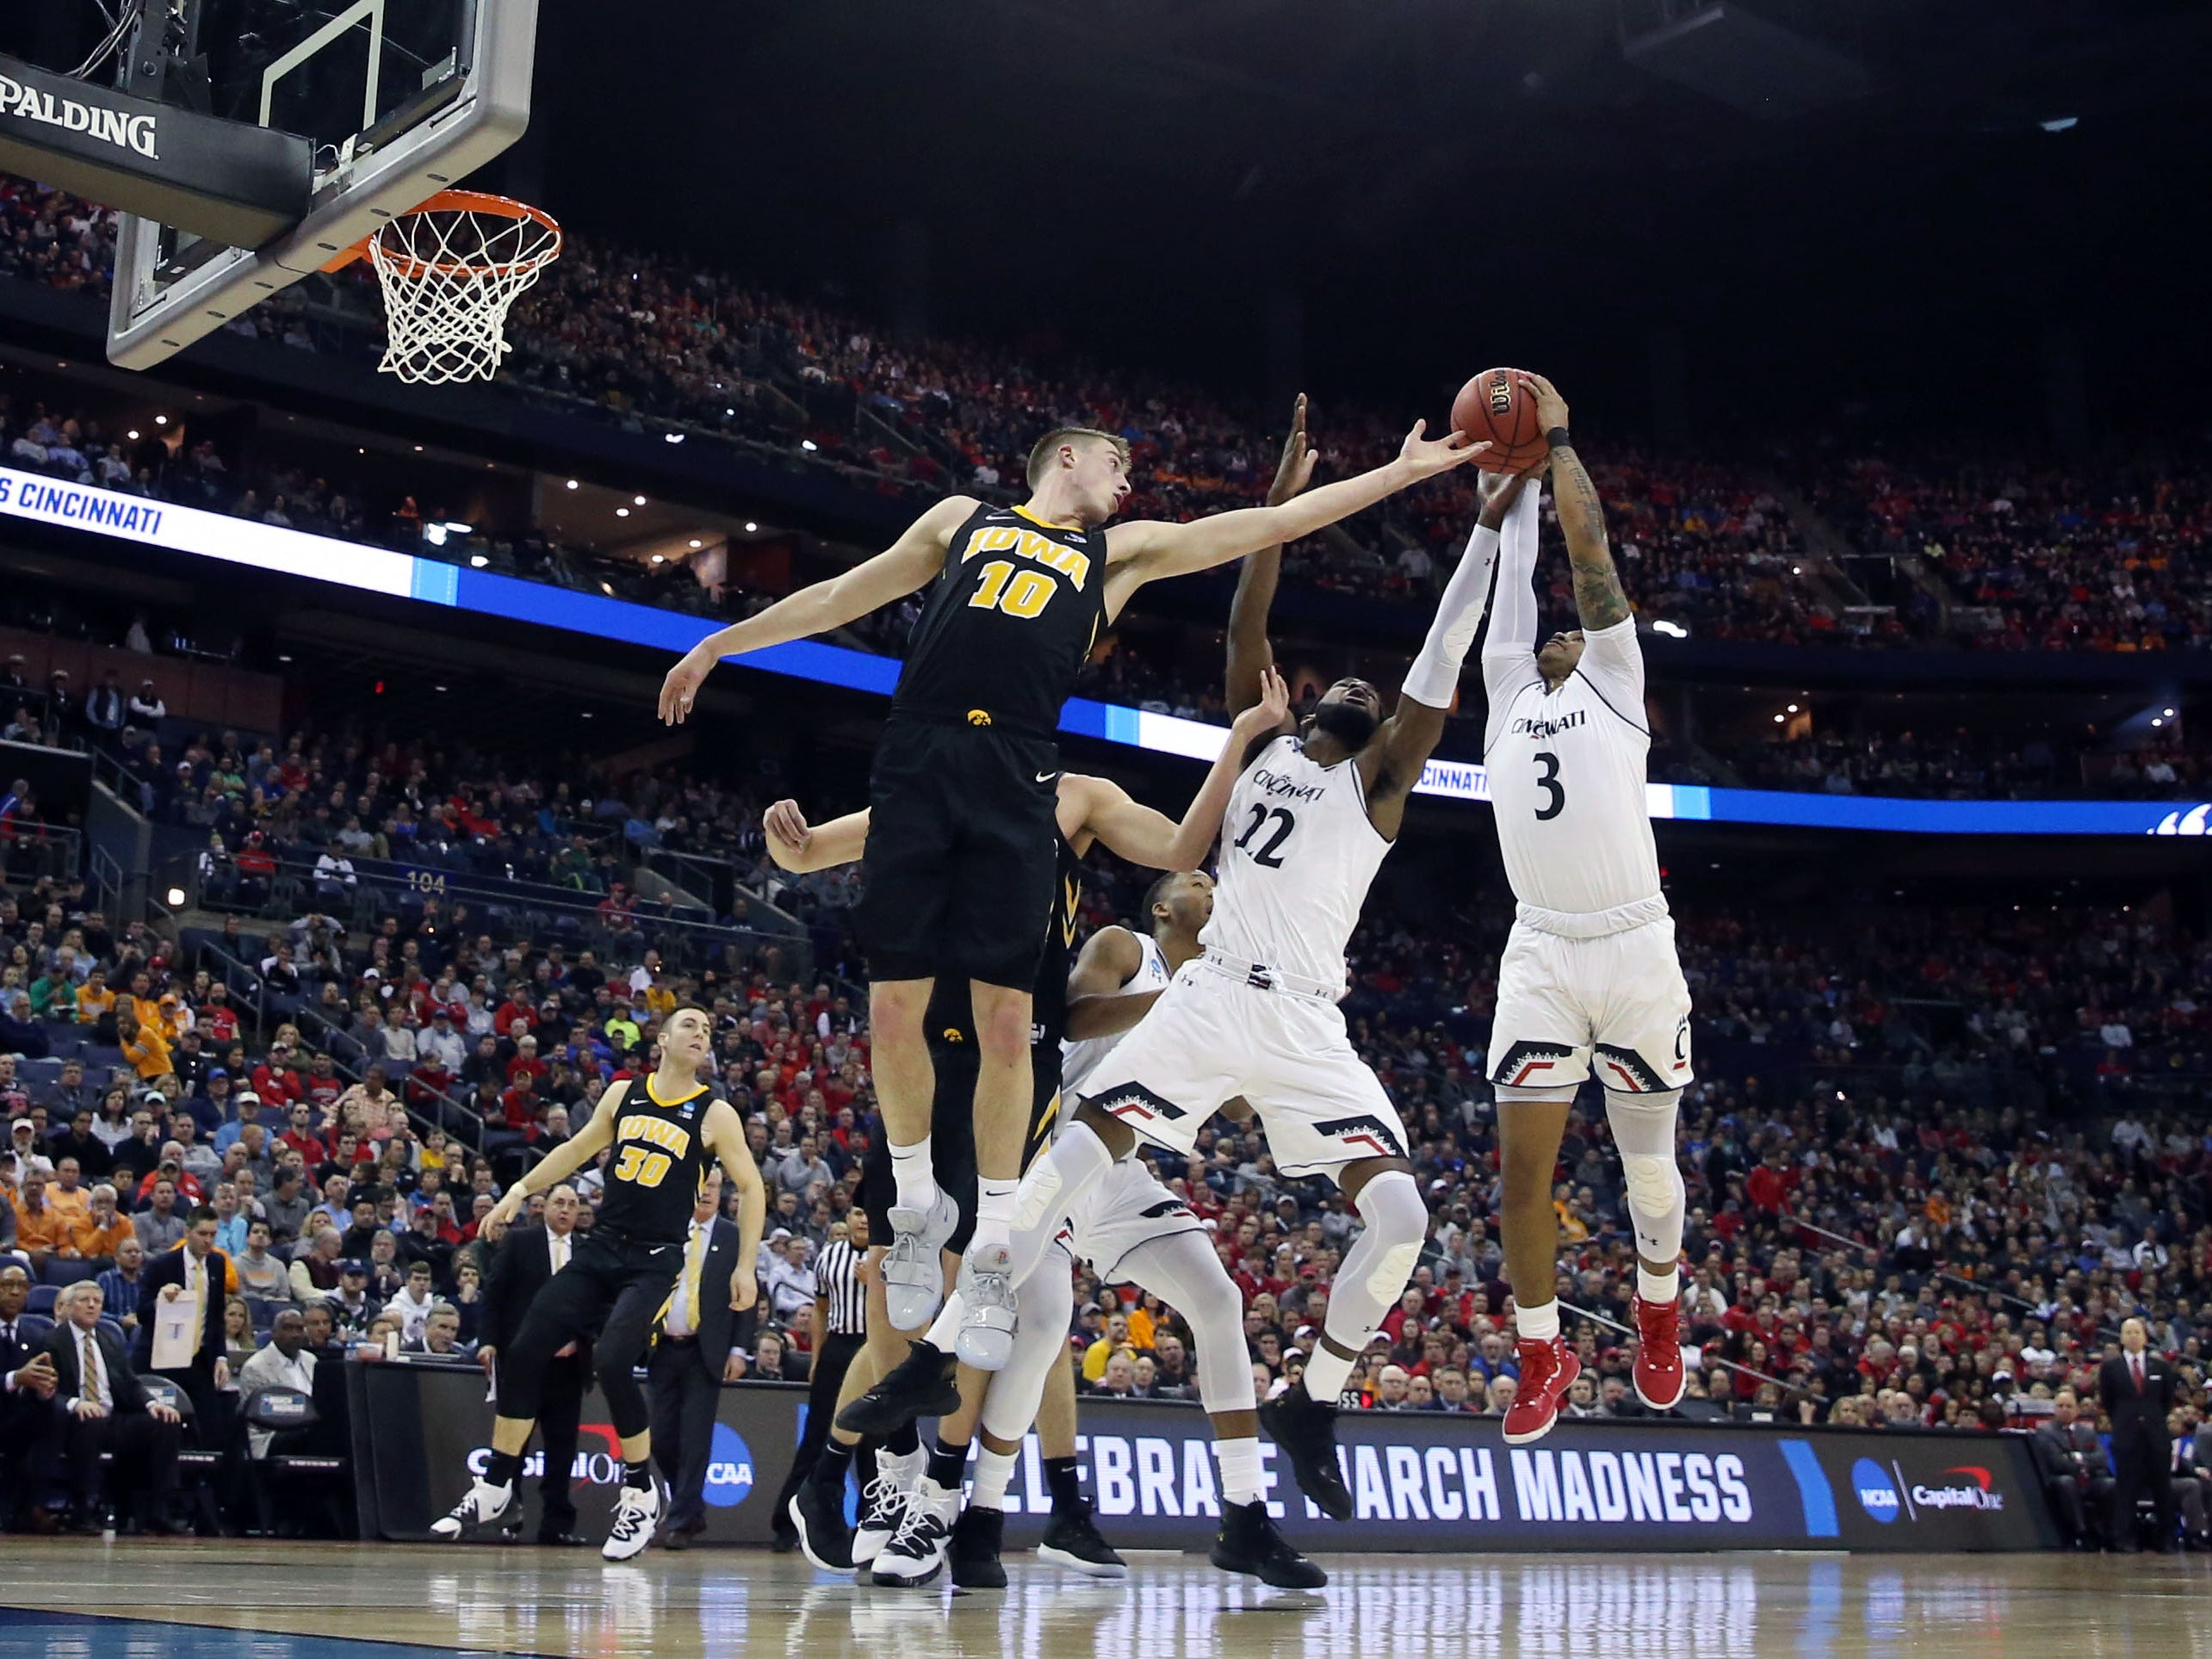 Iowa Hawkeyes guard Joe Wieskamp (10) battles for the ball with Cincinnati Bearcats forward Eliel Nsoseme (22) and guard Justin Jenifer (3)  in the first round of the 2019 NCAA Tournament at Nationwide Arena on March 22, 2019.